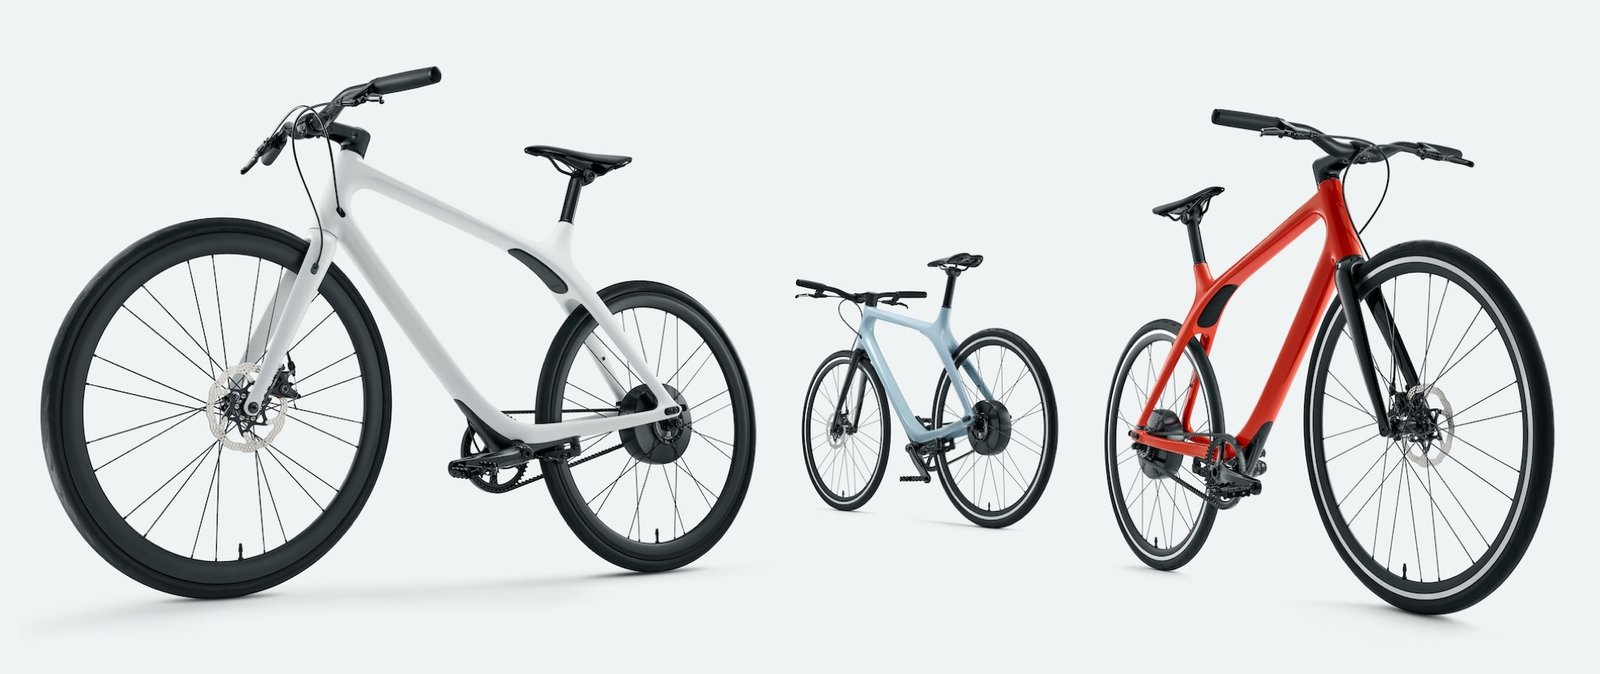 The New Gogoro Eeyo Is the Sports Car of the E-Bike World